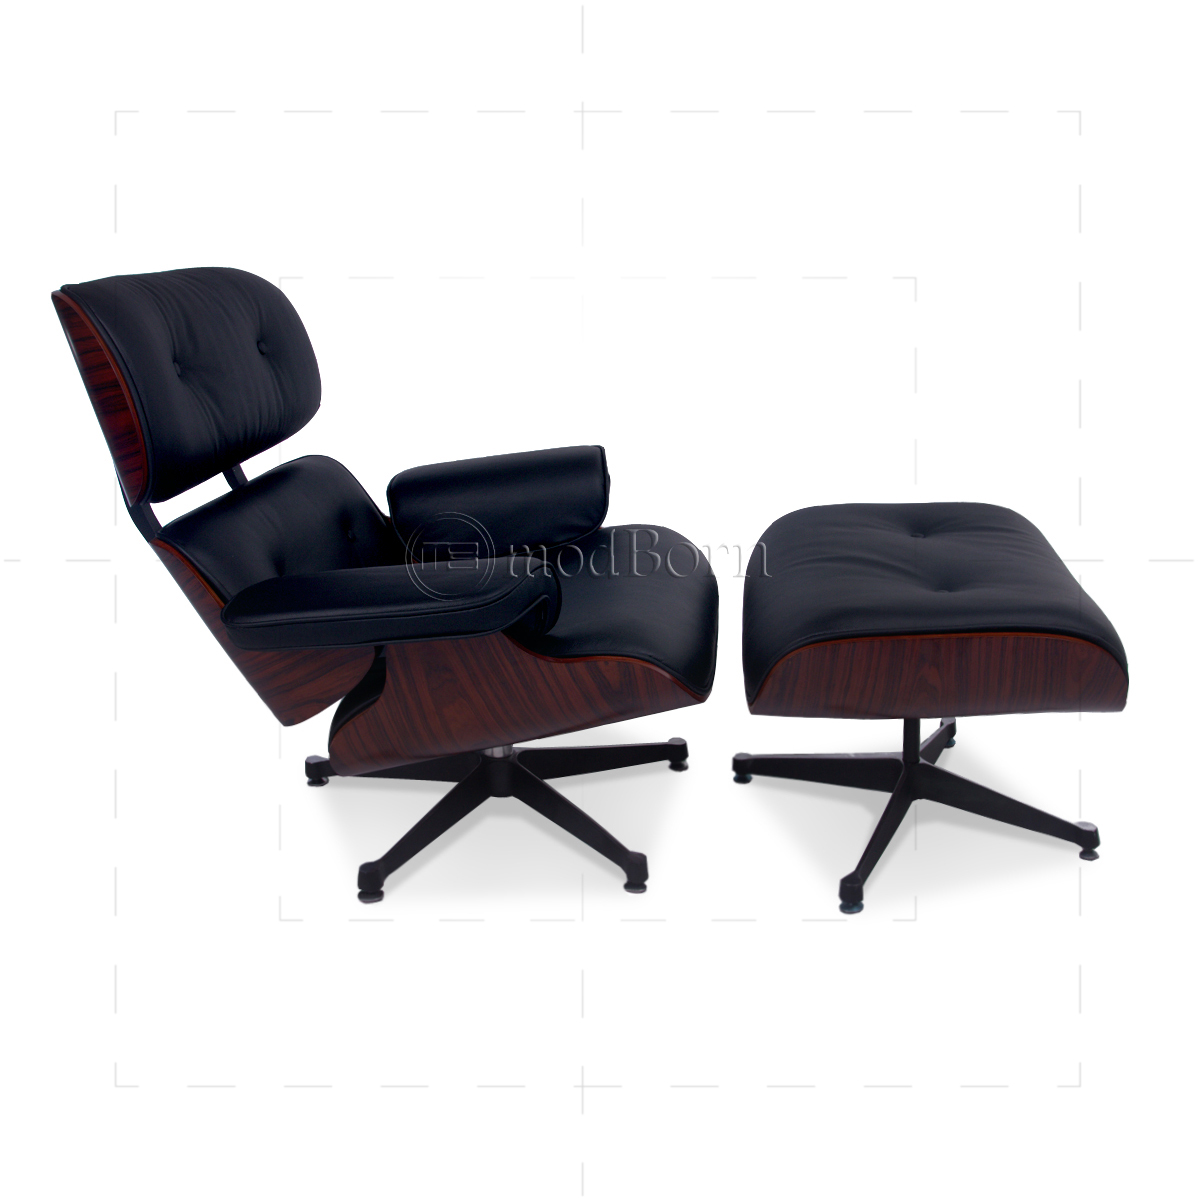 Eames style lounge chair and ottoman black leather for Eames vitra replica